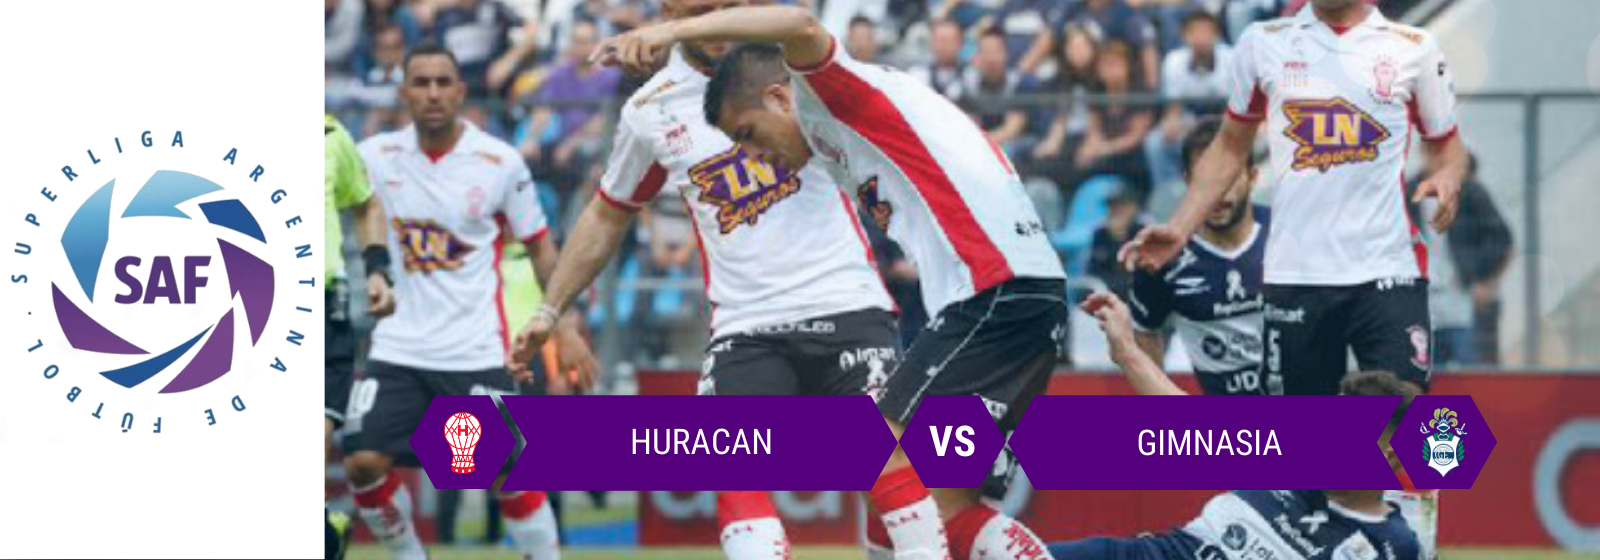 Asianconnect: Huracan vs Gimnasia Odds for January 31, 2020